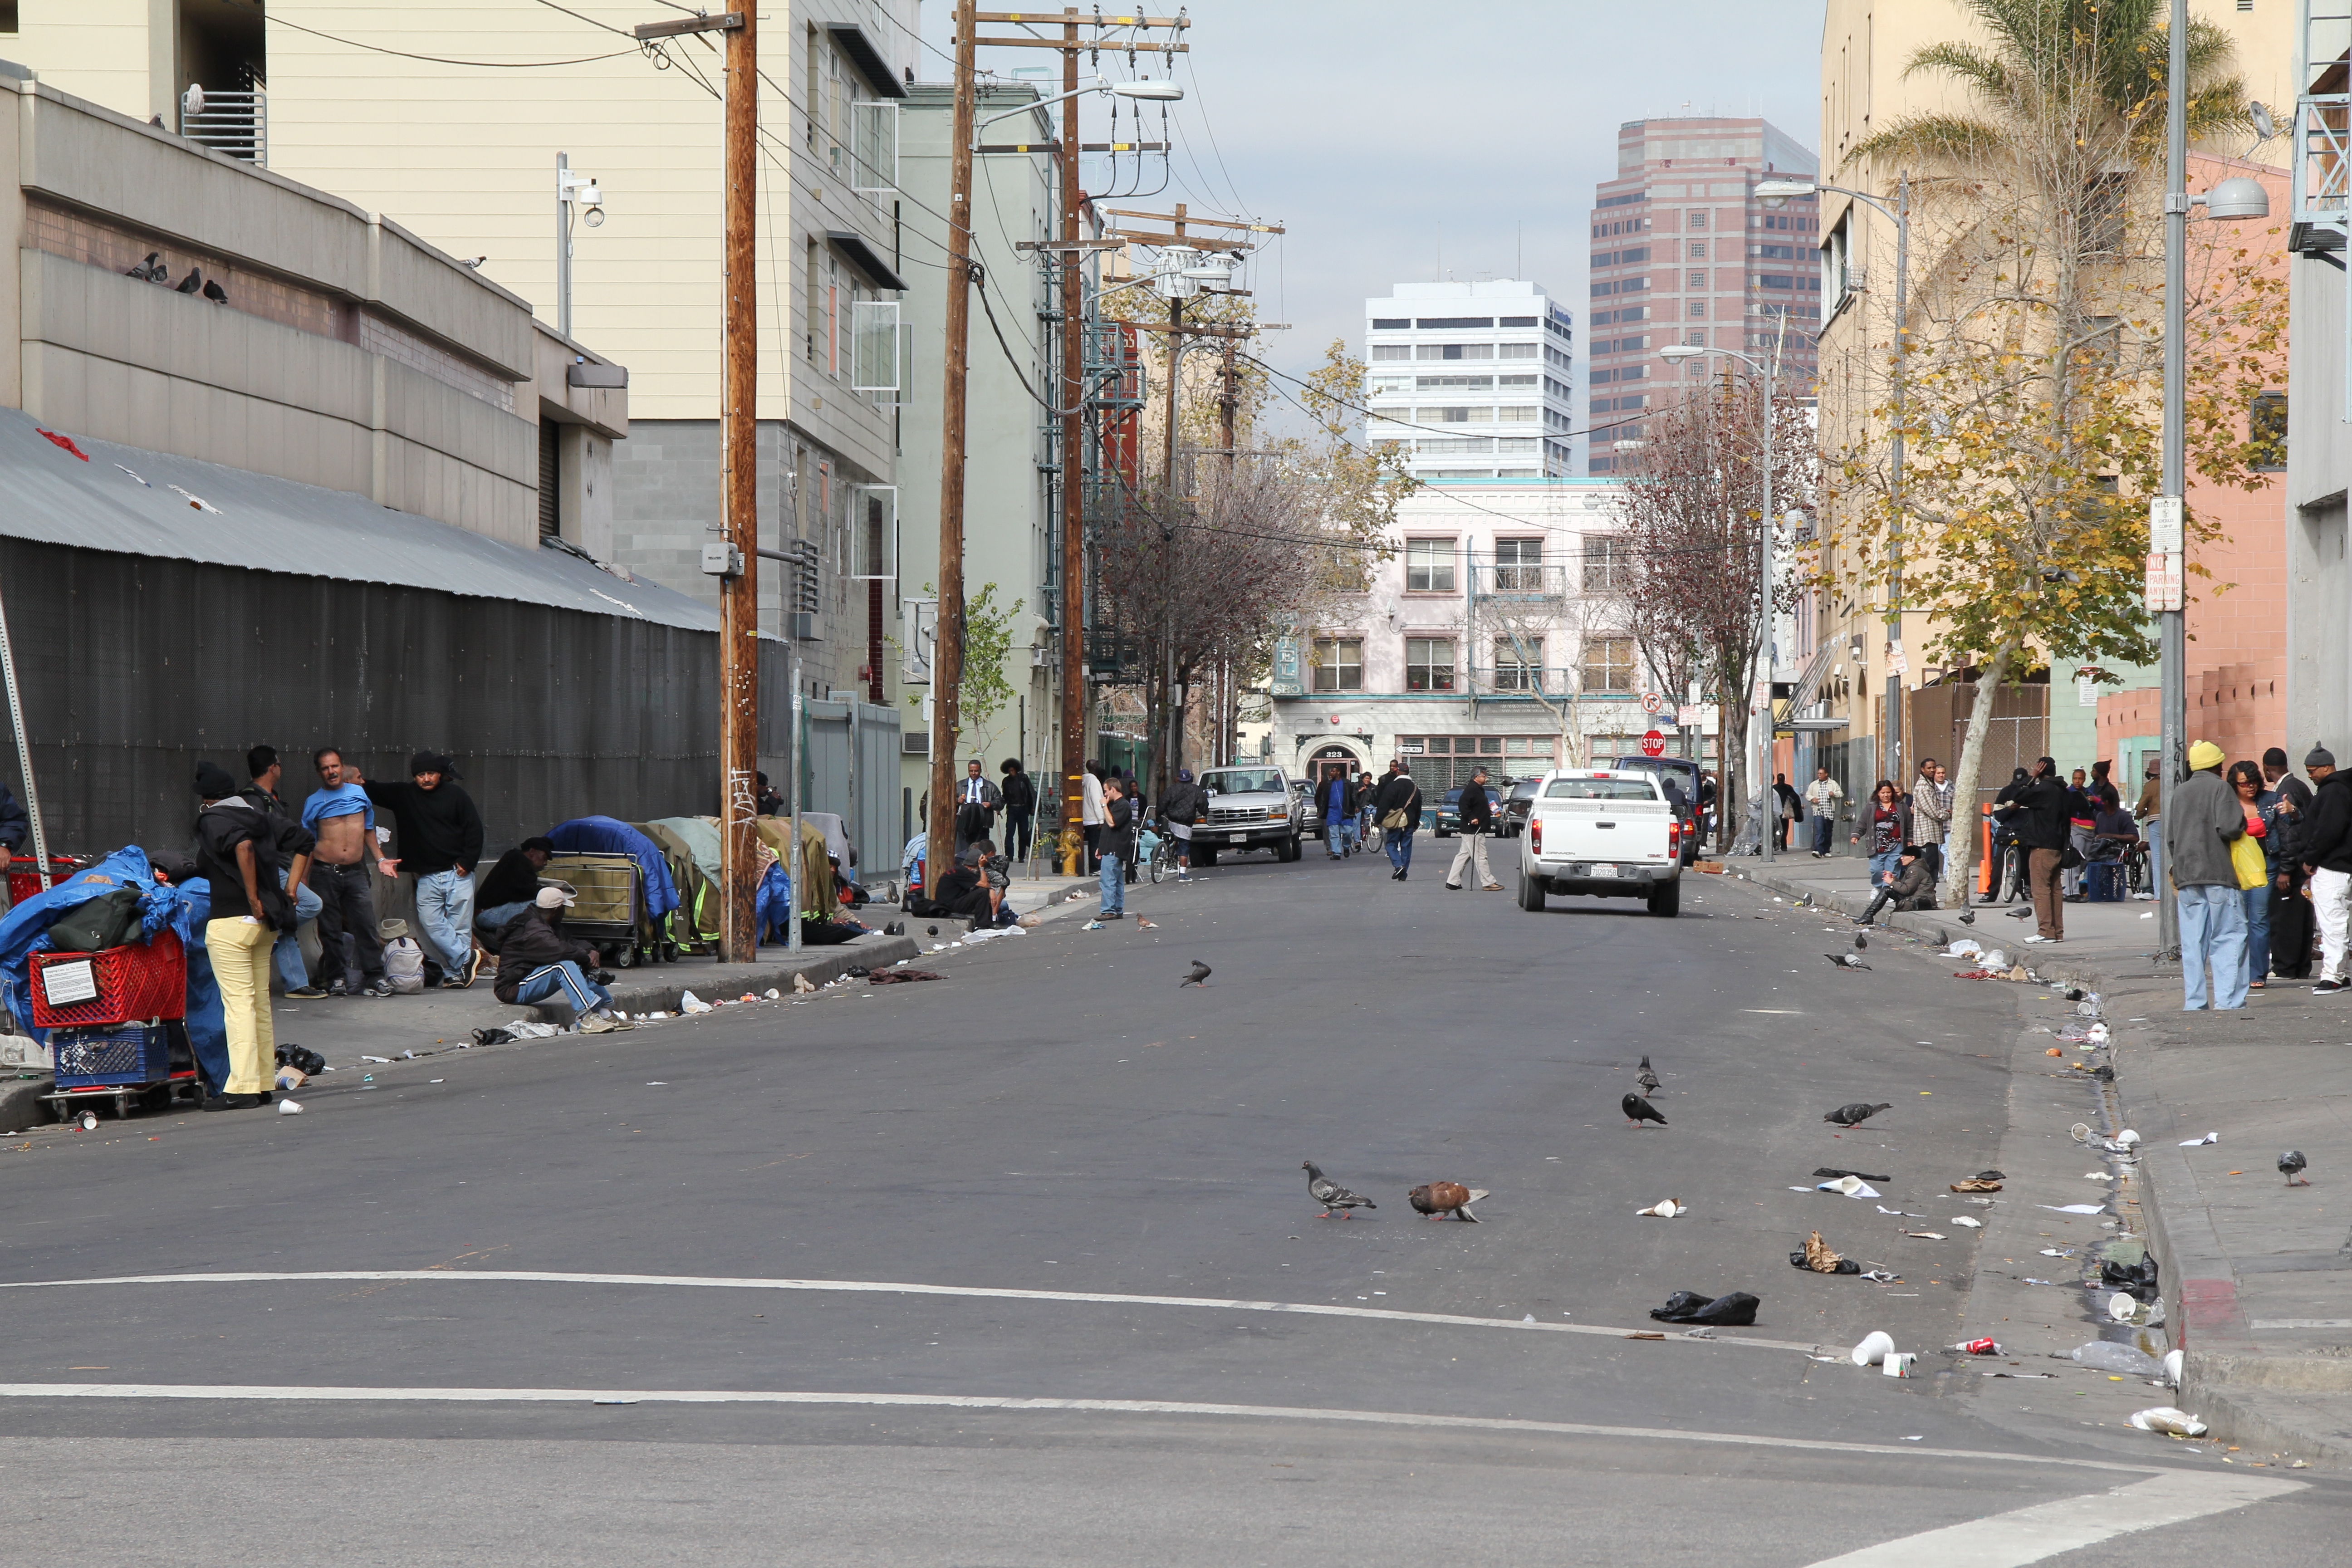 File:Skid Row, Downtown Los Angeles, California USA ...